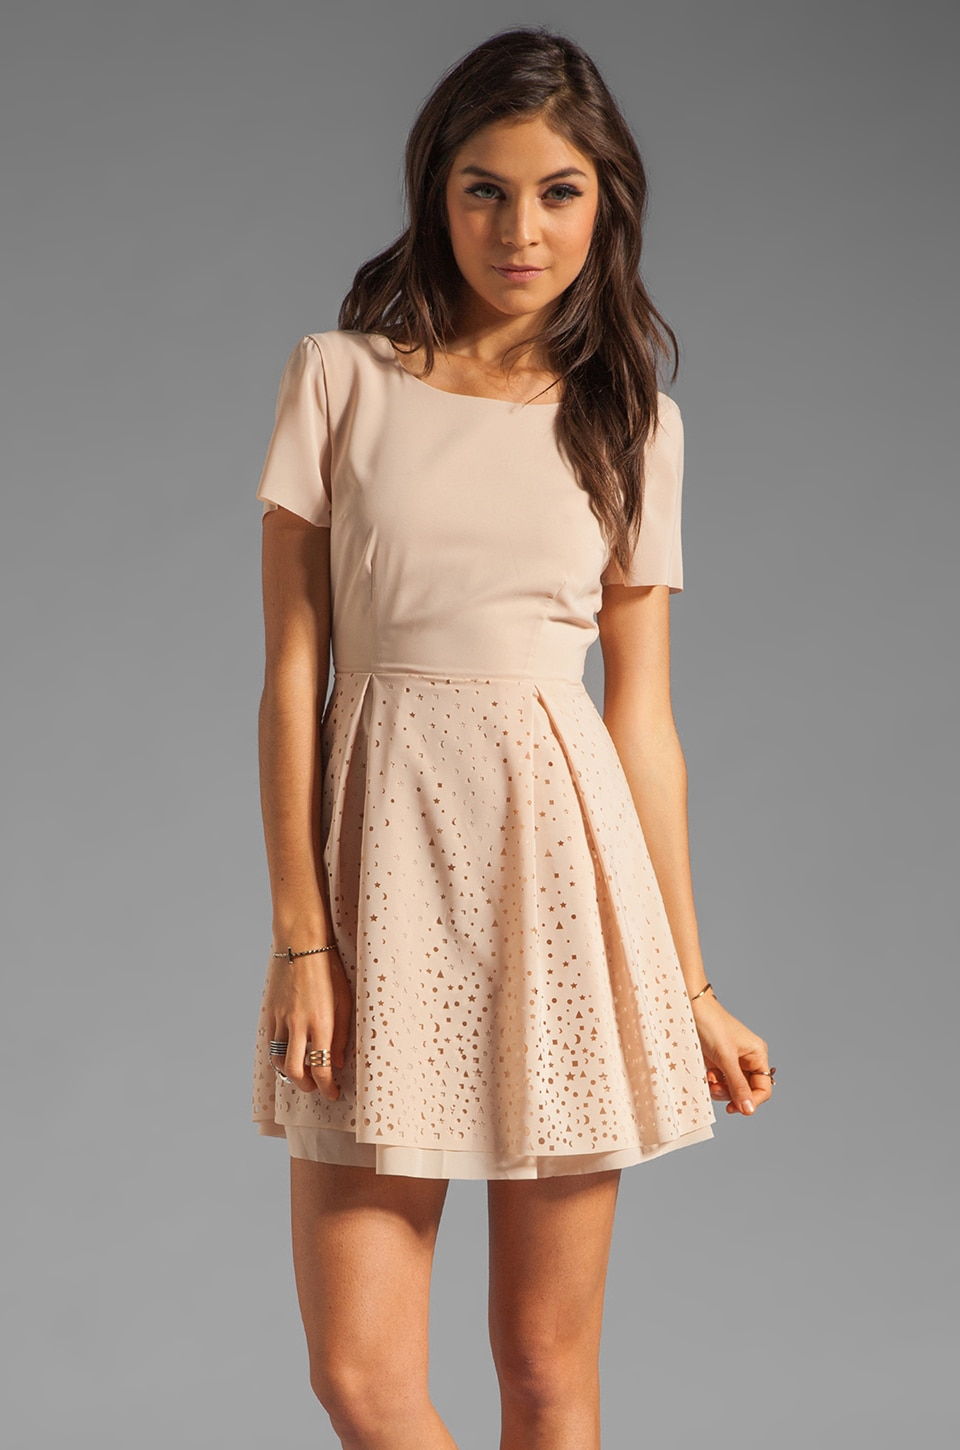 Something Else by Natalie Wood Laser Star Dress in Nude Cream